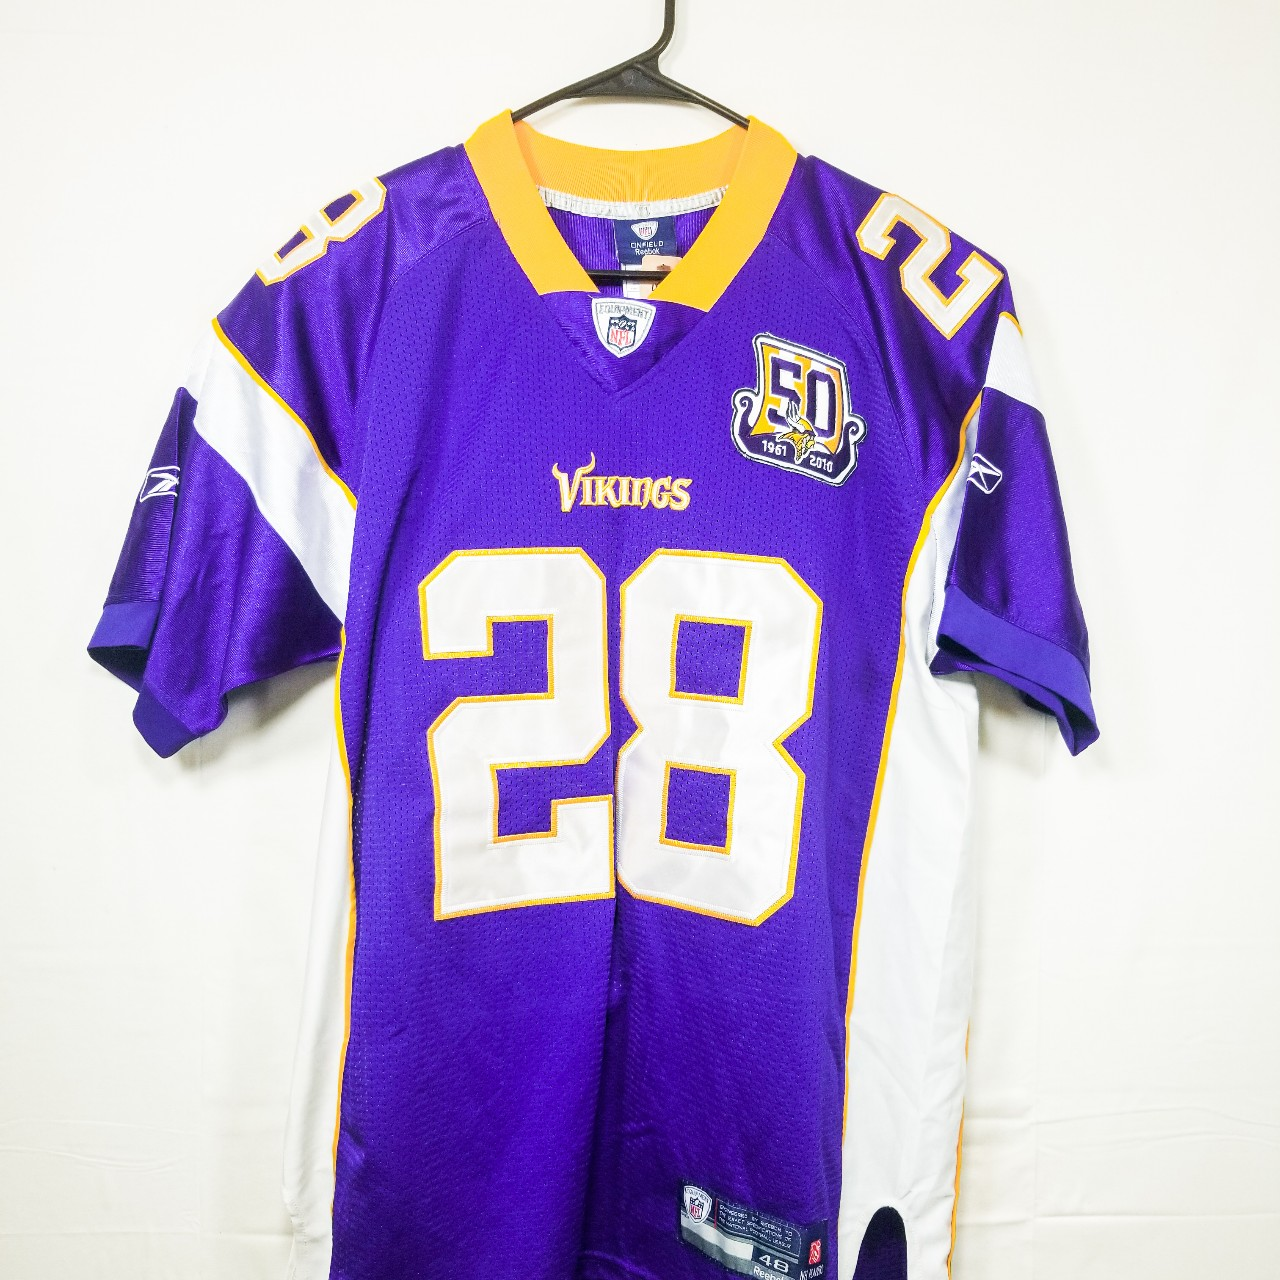 detailed look 17ba3 ddb54 Reebok Jersey Adrian Peterson #28 Minnesota Vikings ...